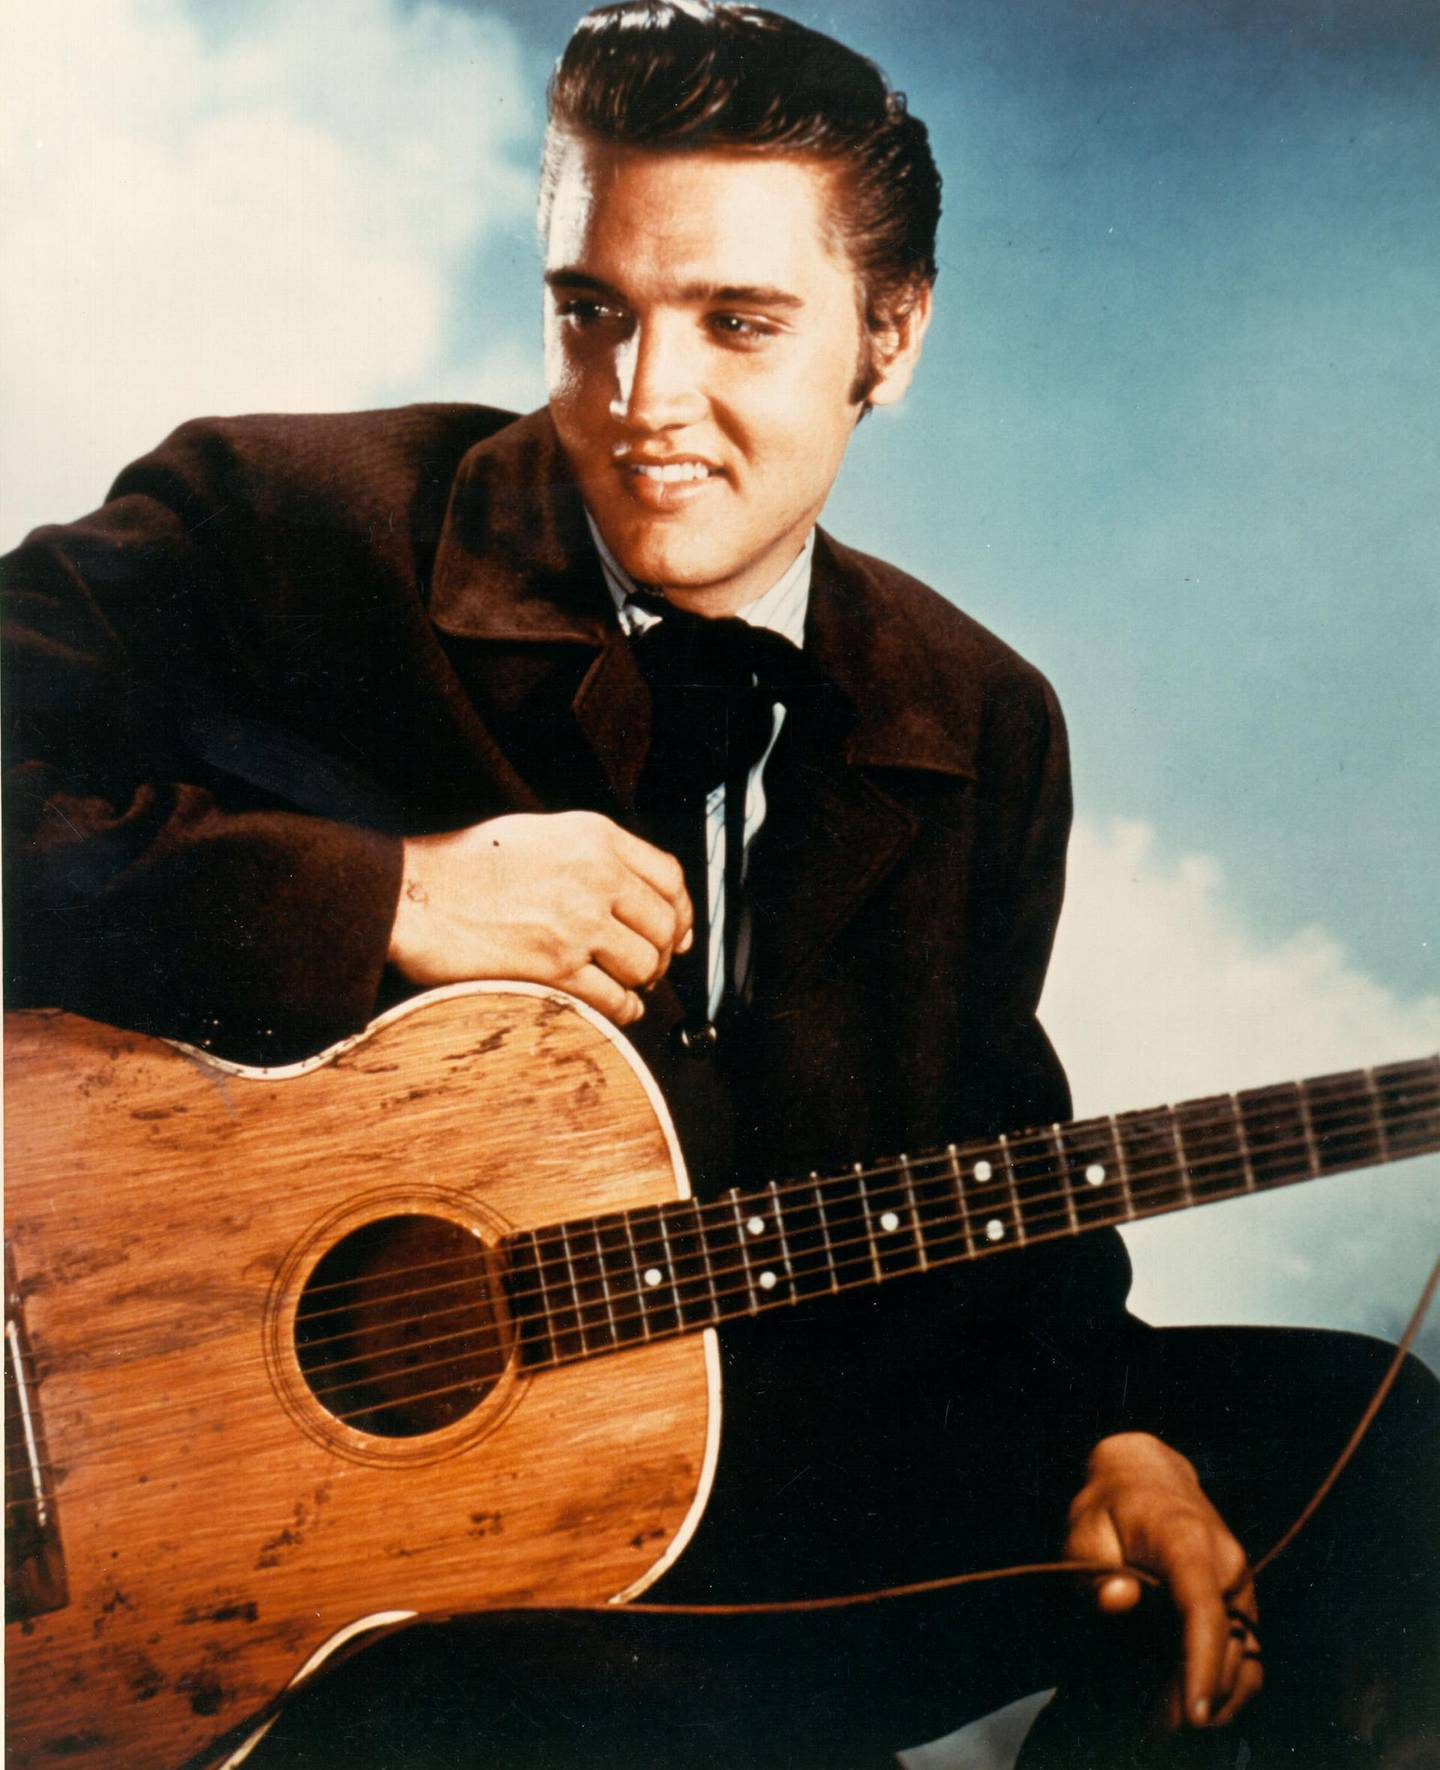 """MALIBU, CA - AUGUST 1956: Rock and roll singer Elvis Presley during the filming of """"Love Me Tender"""" in Los Angeles, CA. (Photo by Michael Ochs Archives/Getty Images)"""